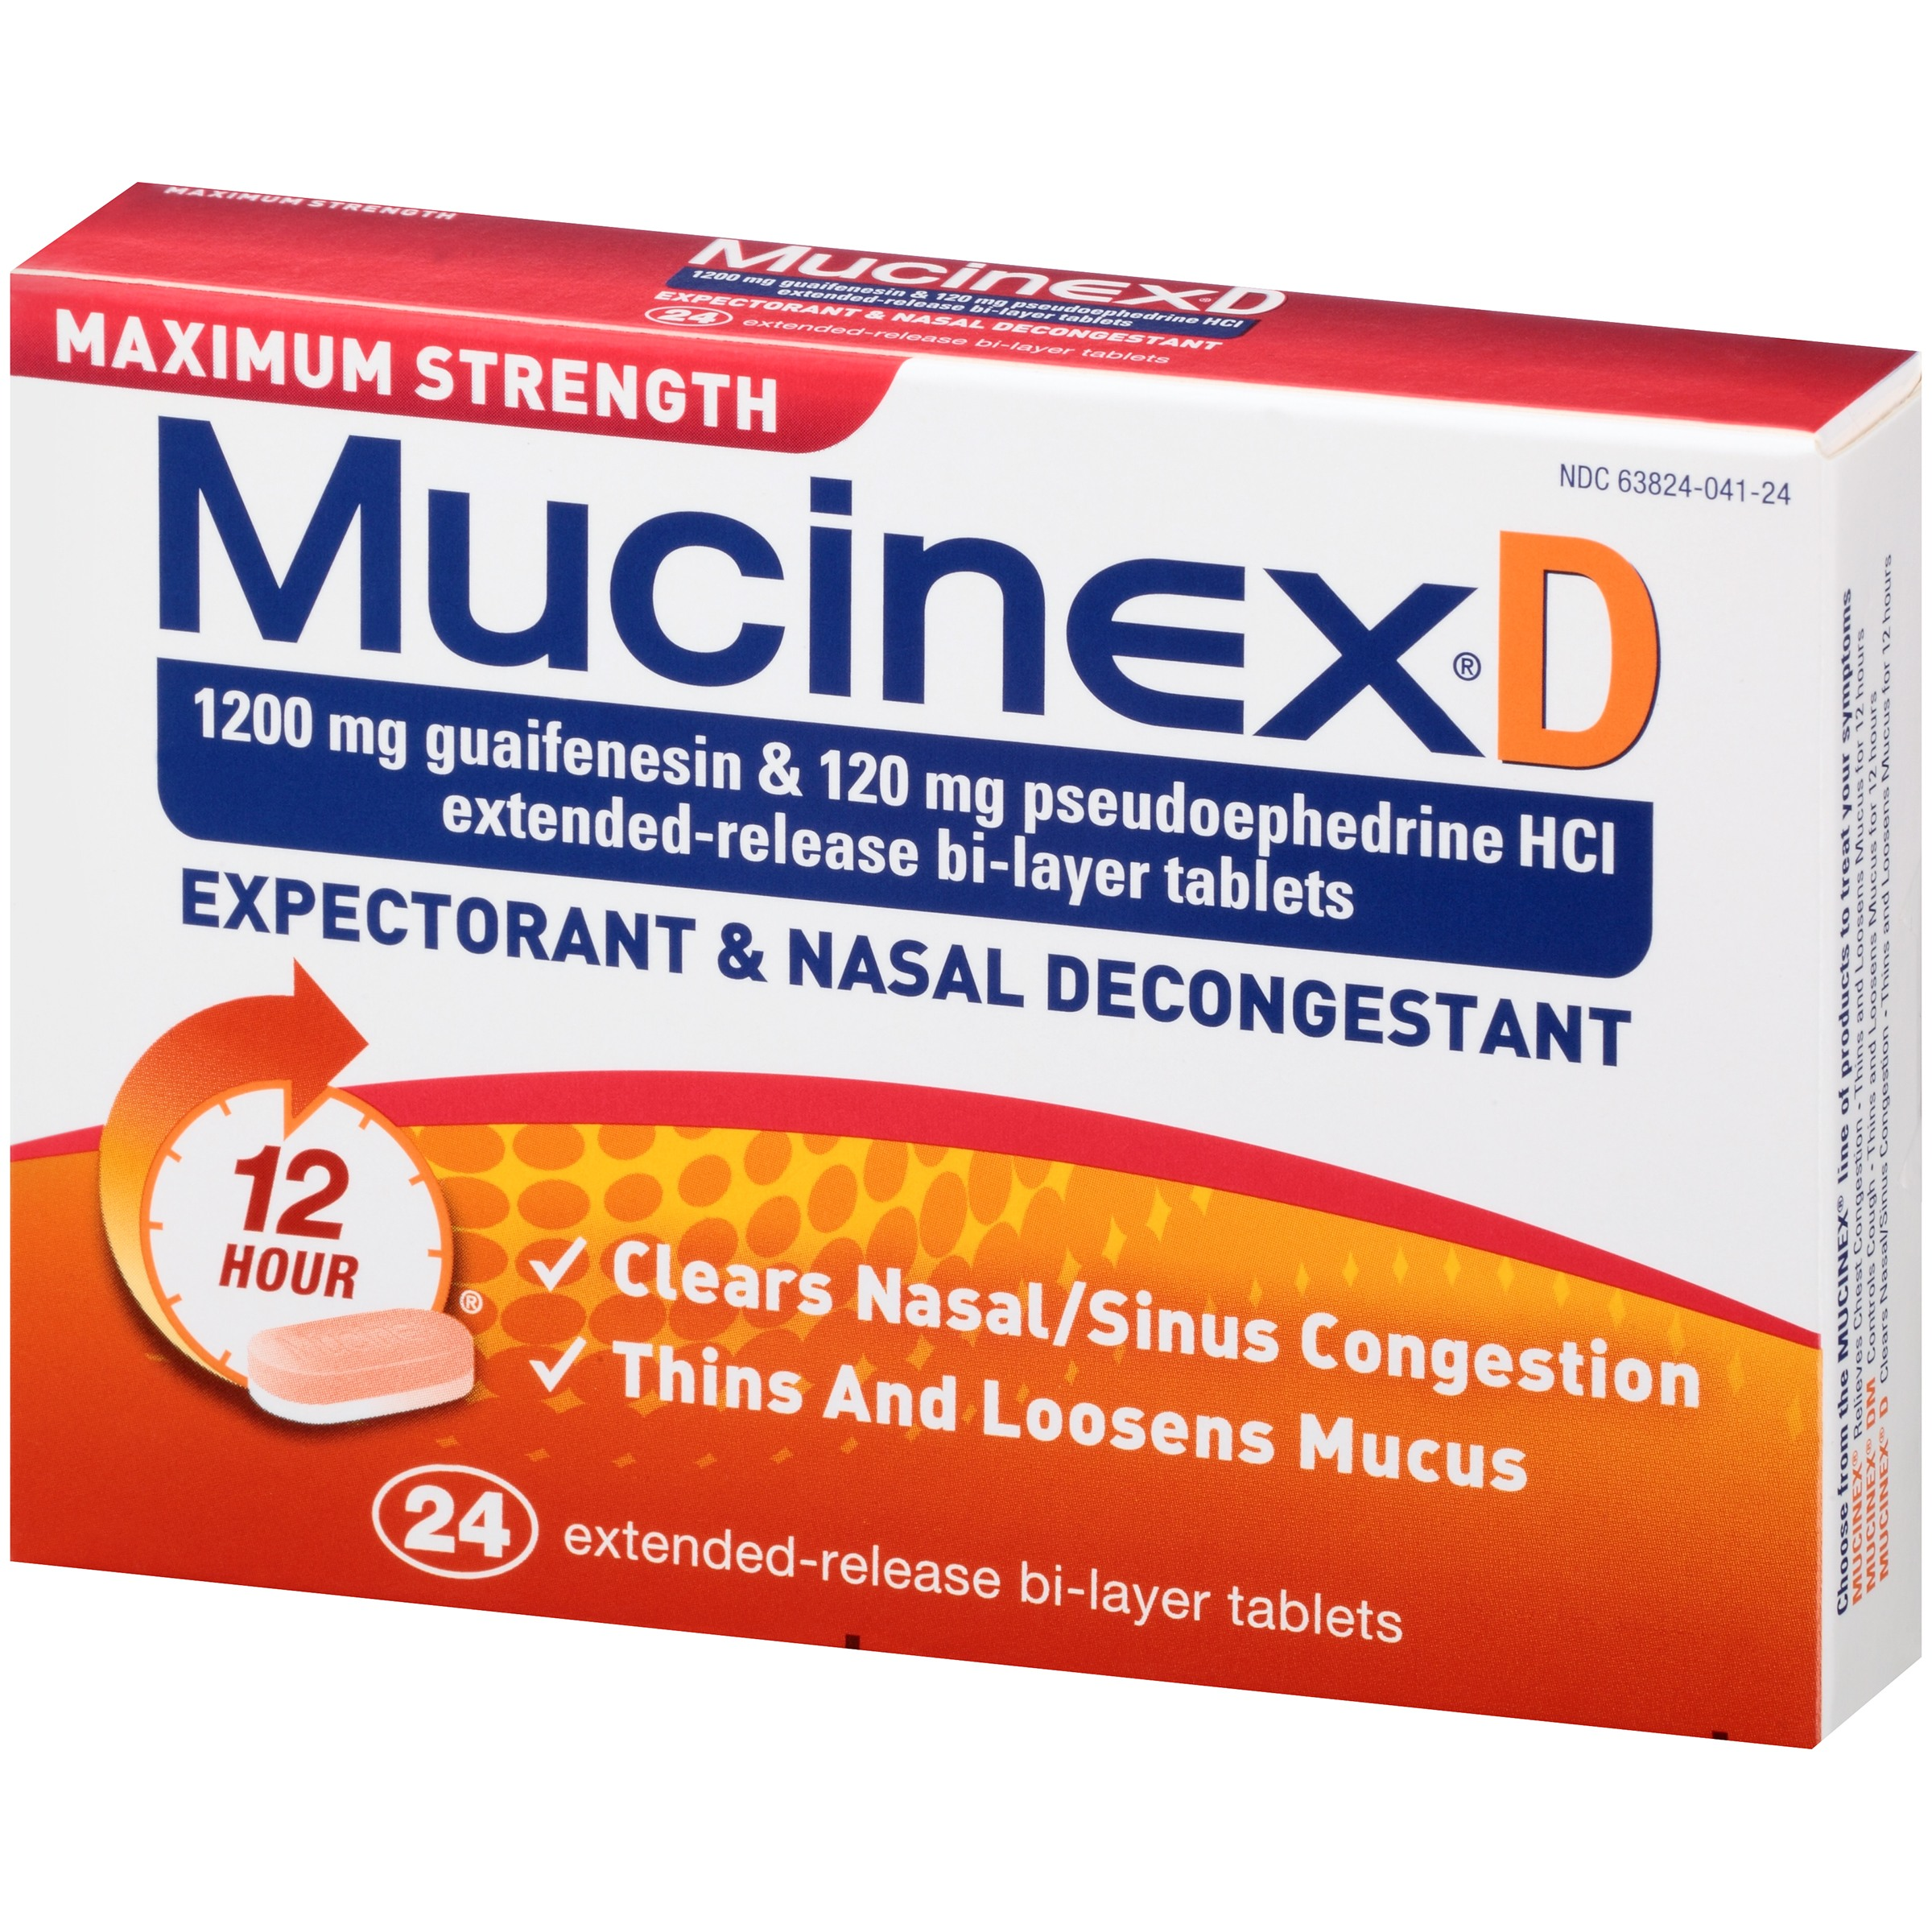 Have you head and looking for the Side Effects of Mucinex? What Is Mucinex (Guaifenesin) is a popular question asked by many these days. So what is Guaifenesin? Guaifenesin is a drug used to treat cough and runny nose.